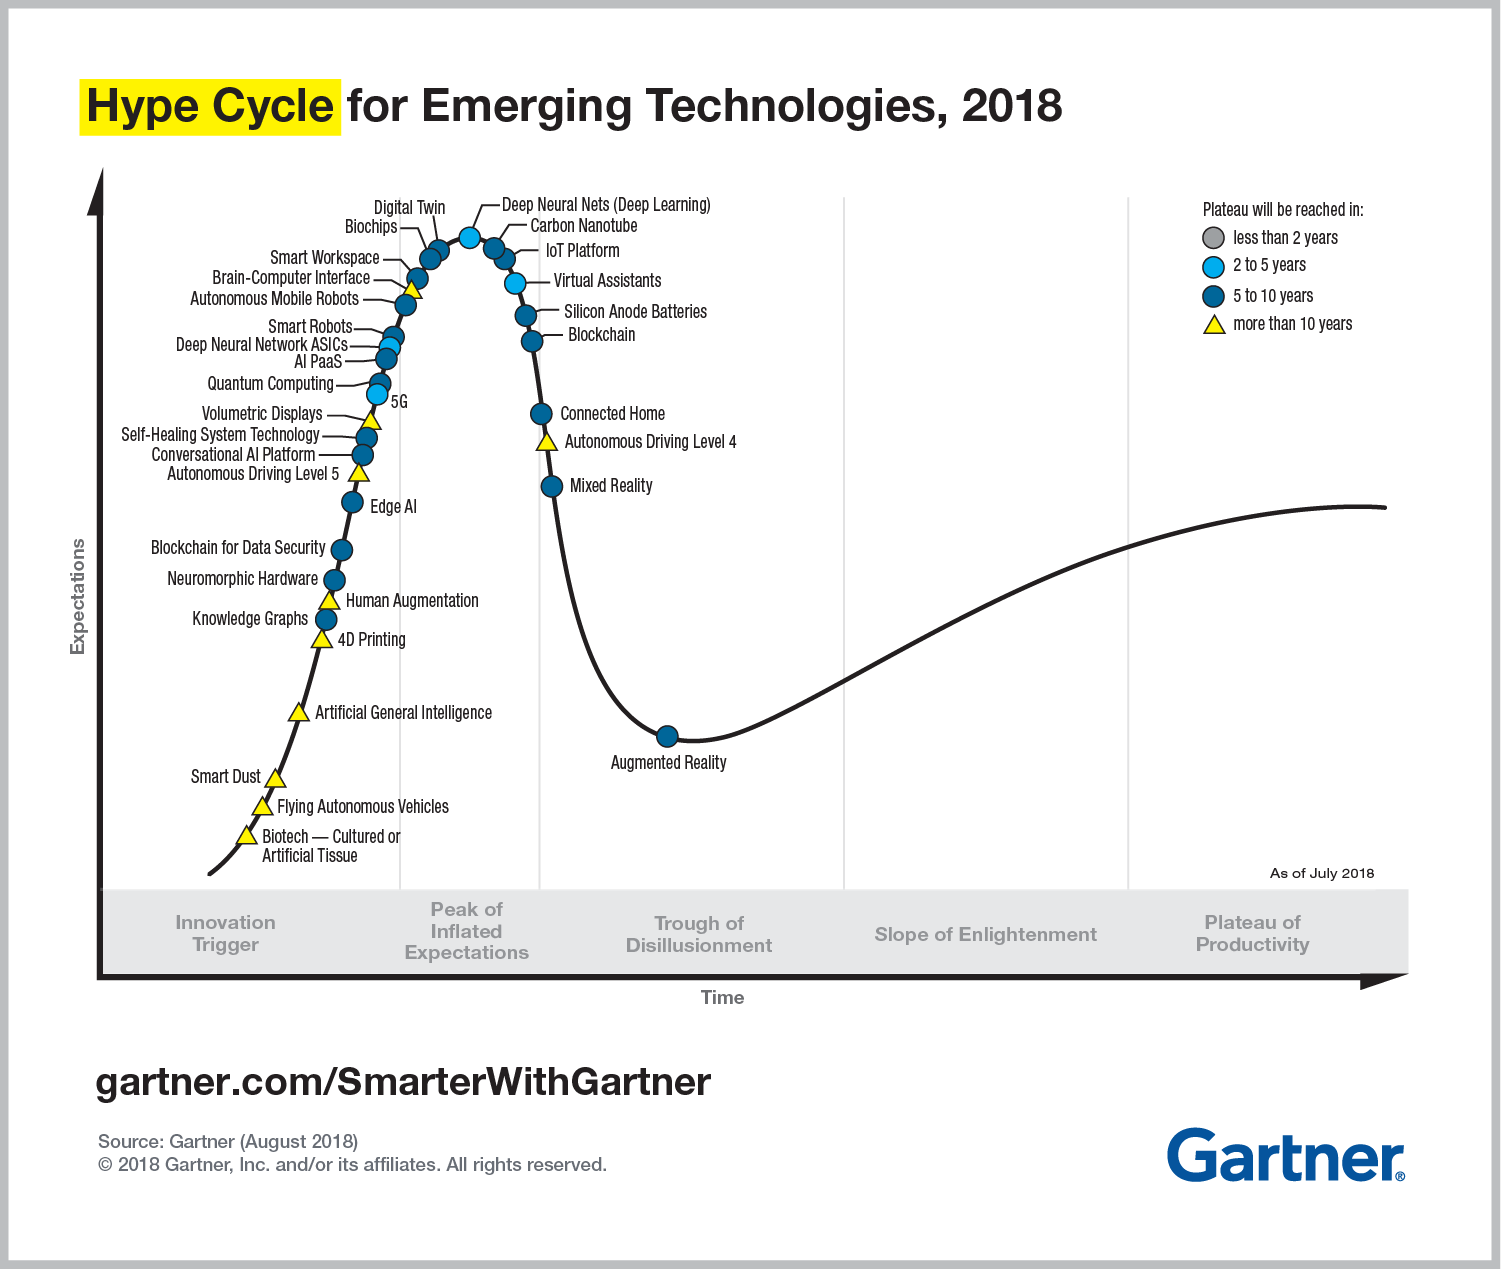 Knowledge Graph Technology in the Hype Cycle 2018 Gartner